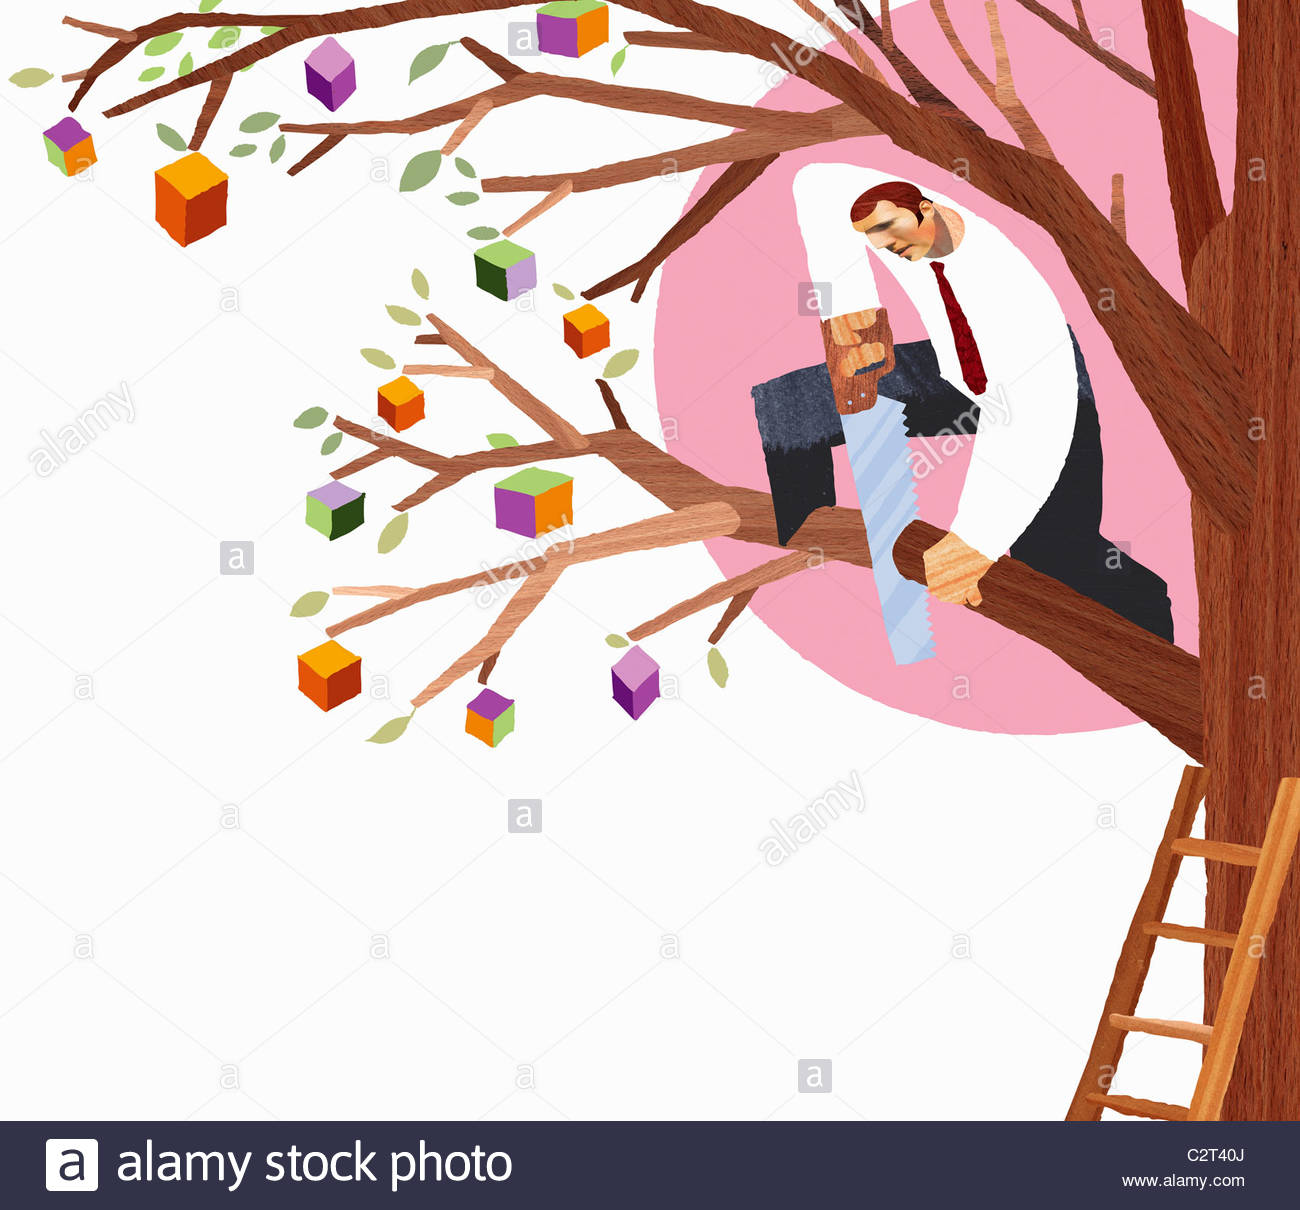 Businessman sawing branch from tree - Stock Image